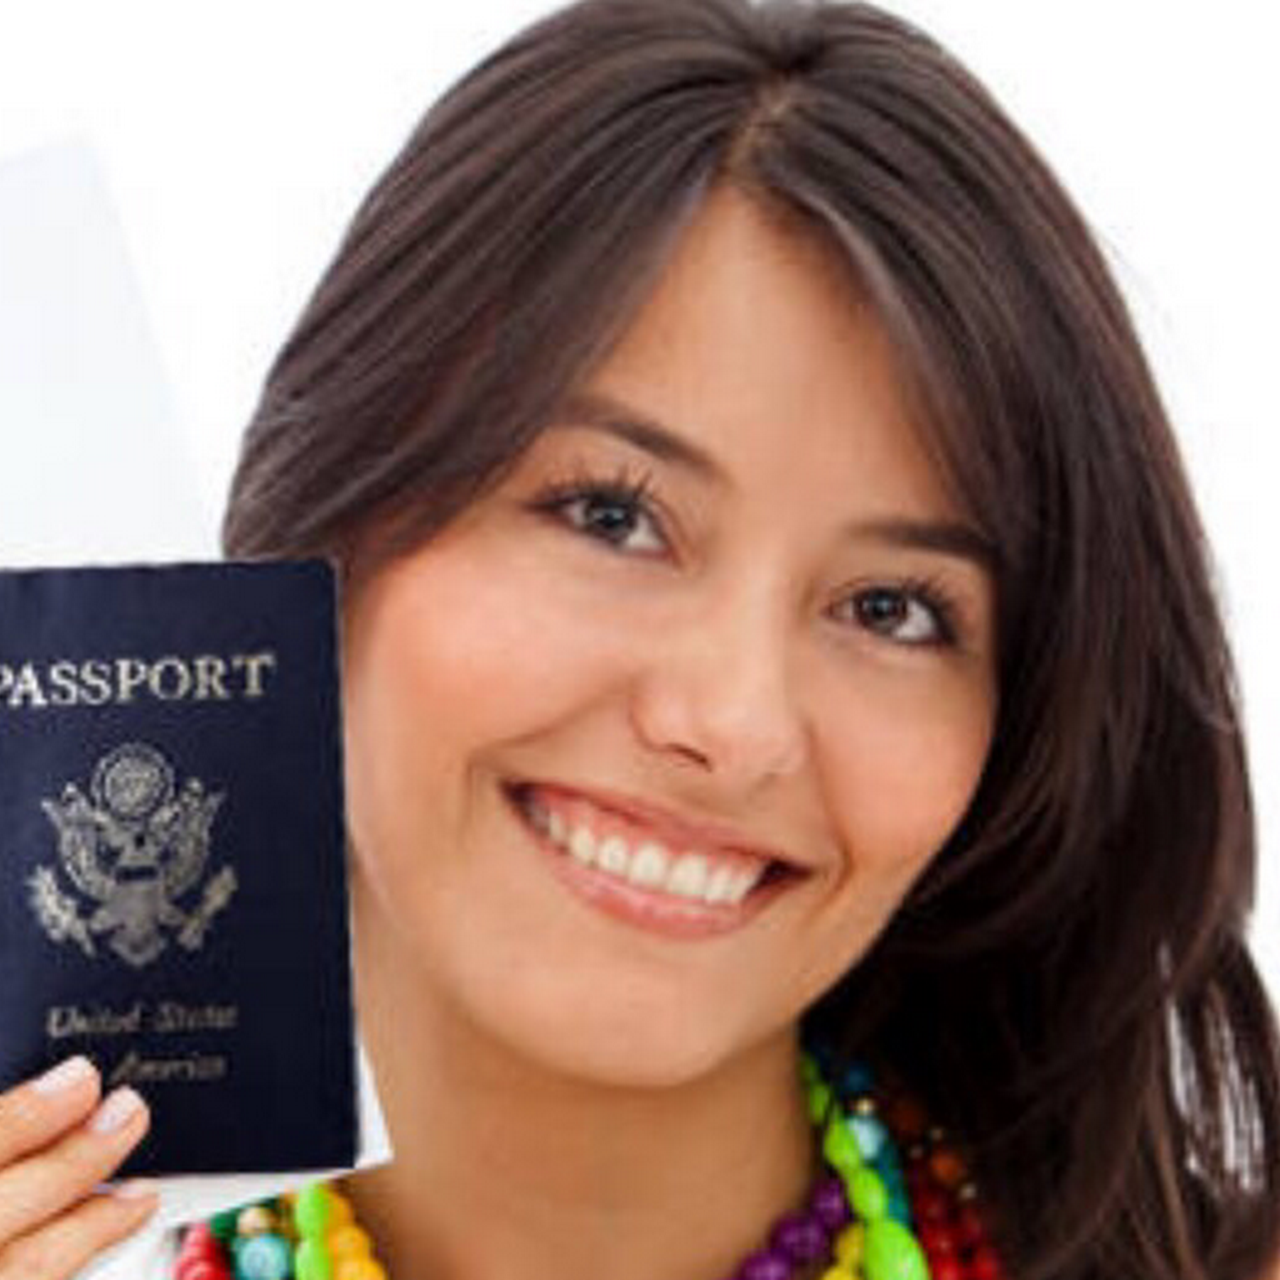 Passport photos astoria ny Real ID Act Could Mean Passports Will Be Needed For